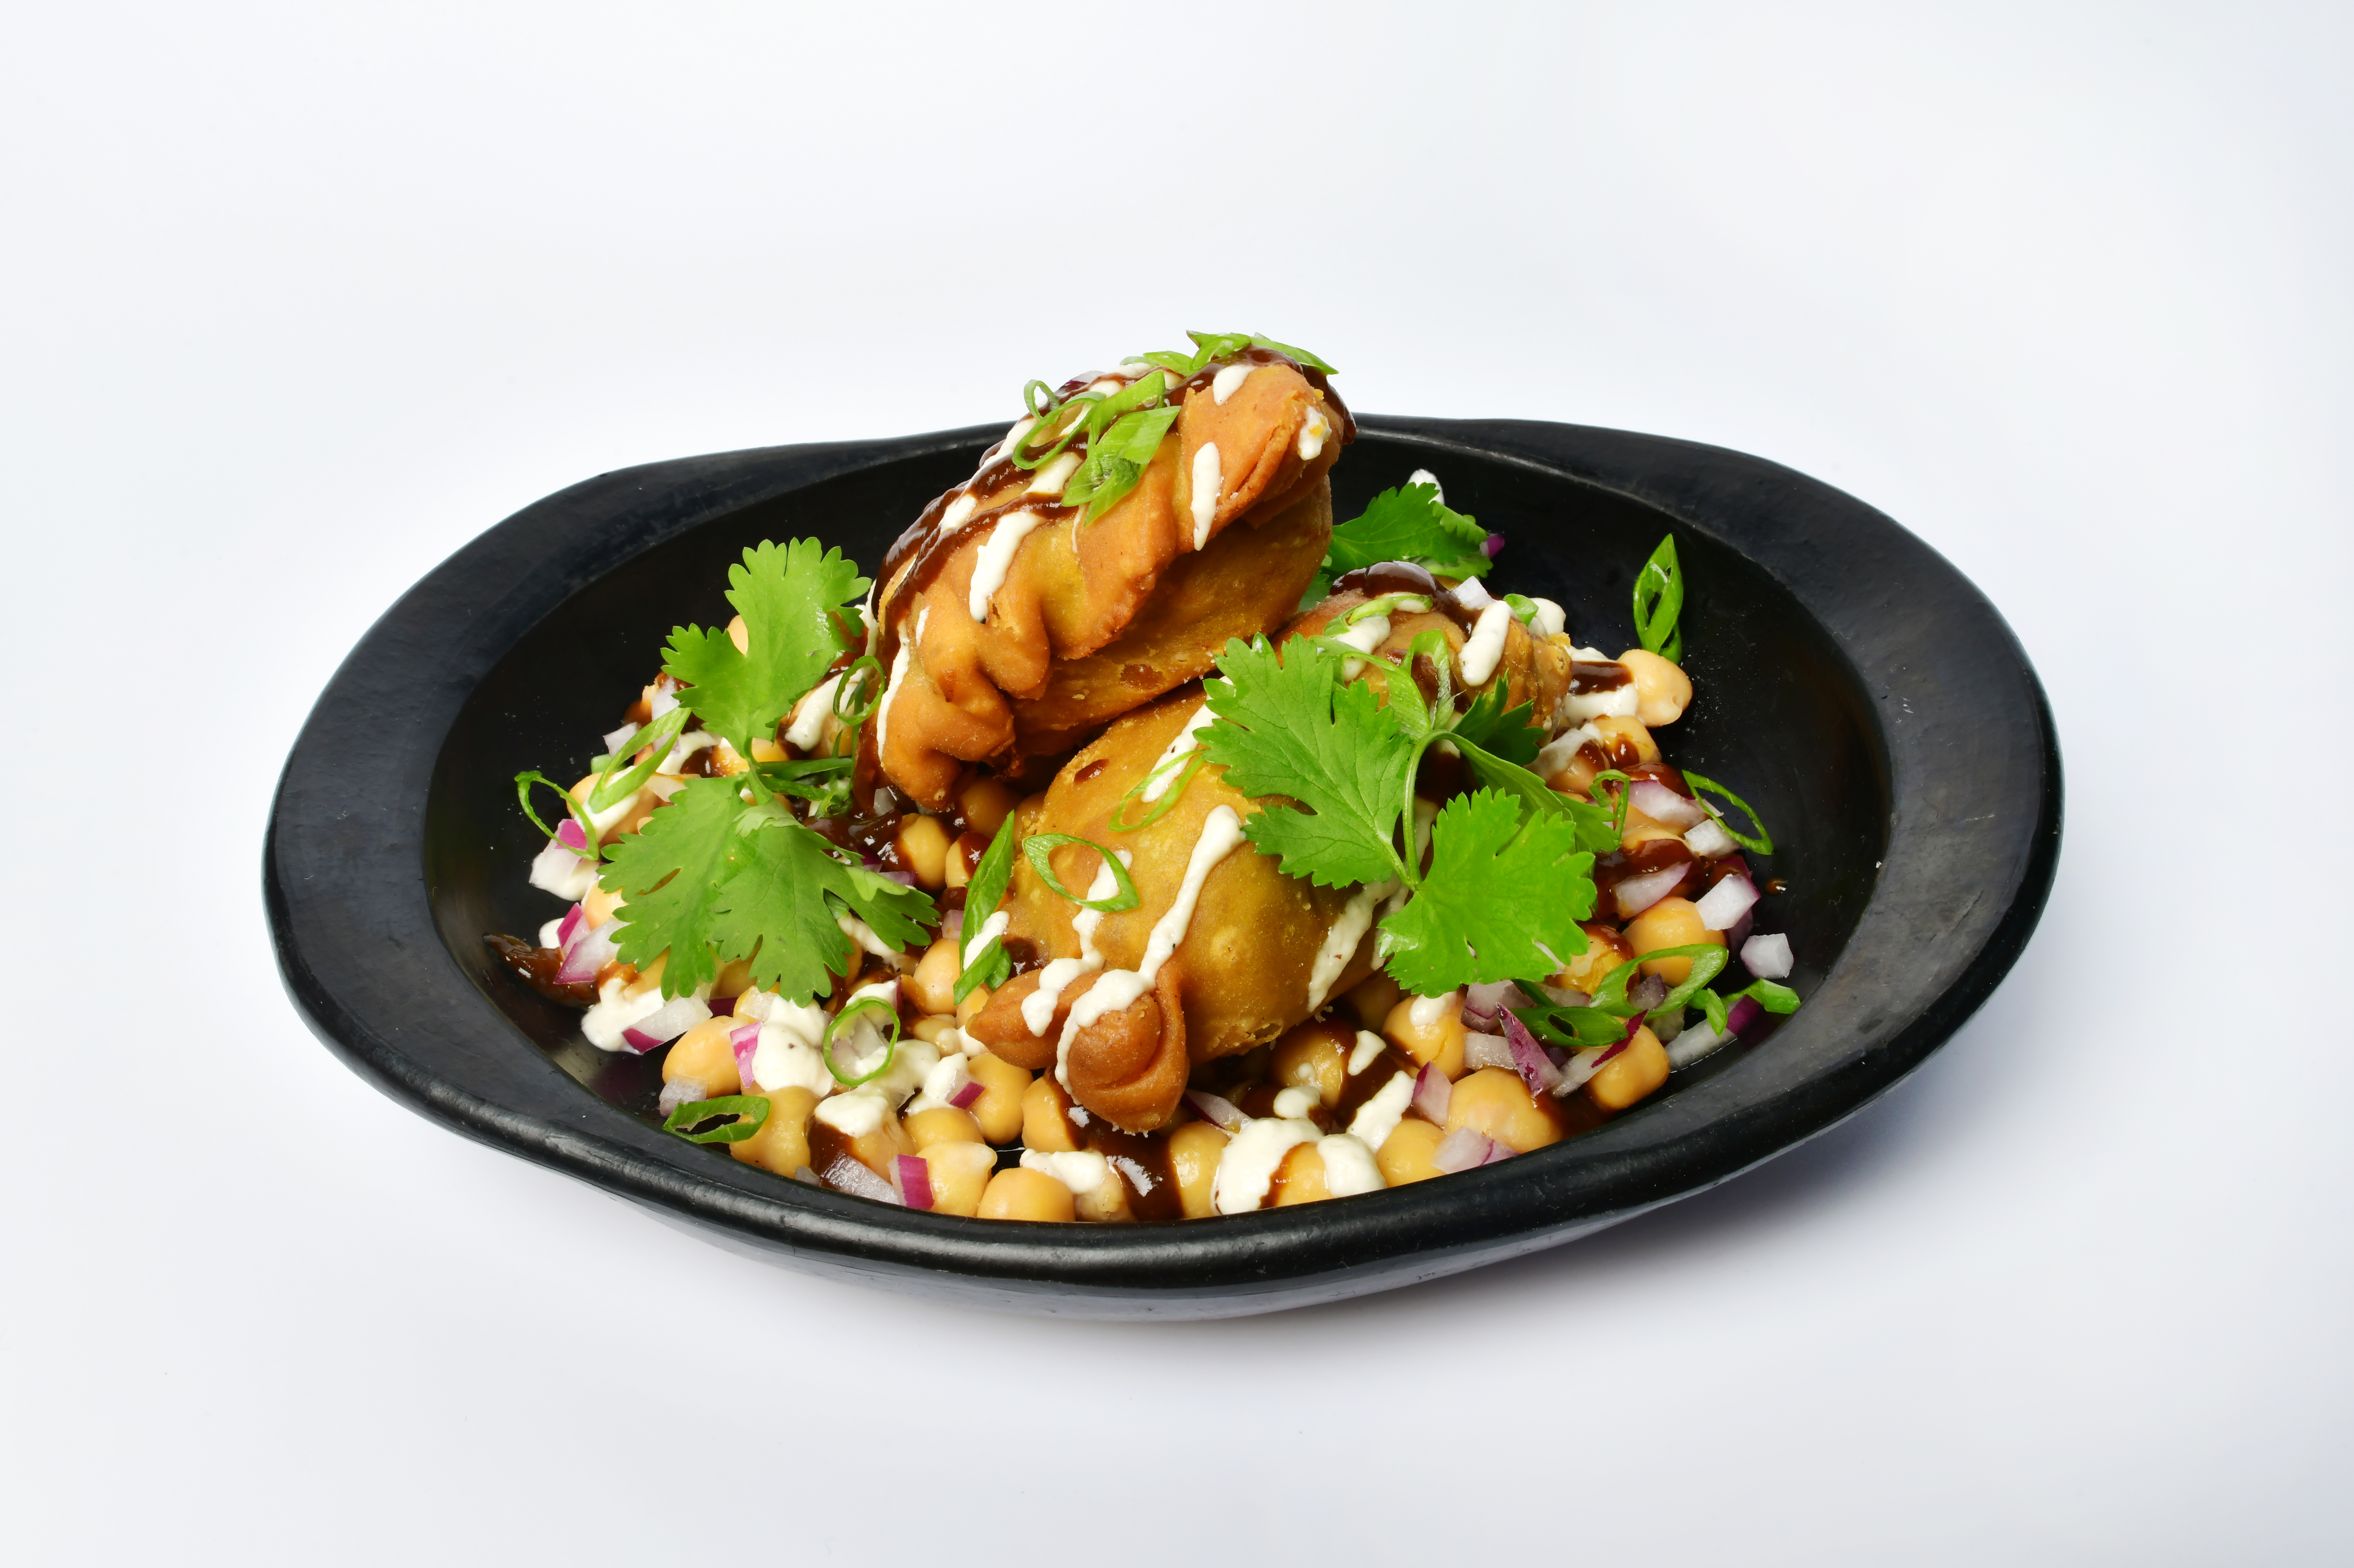 Samosa chat sits in a round black bowl.